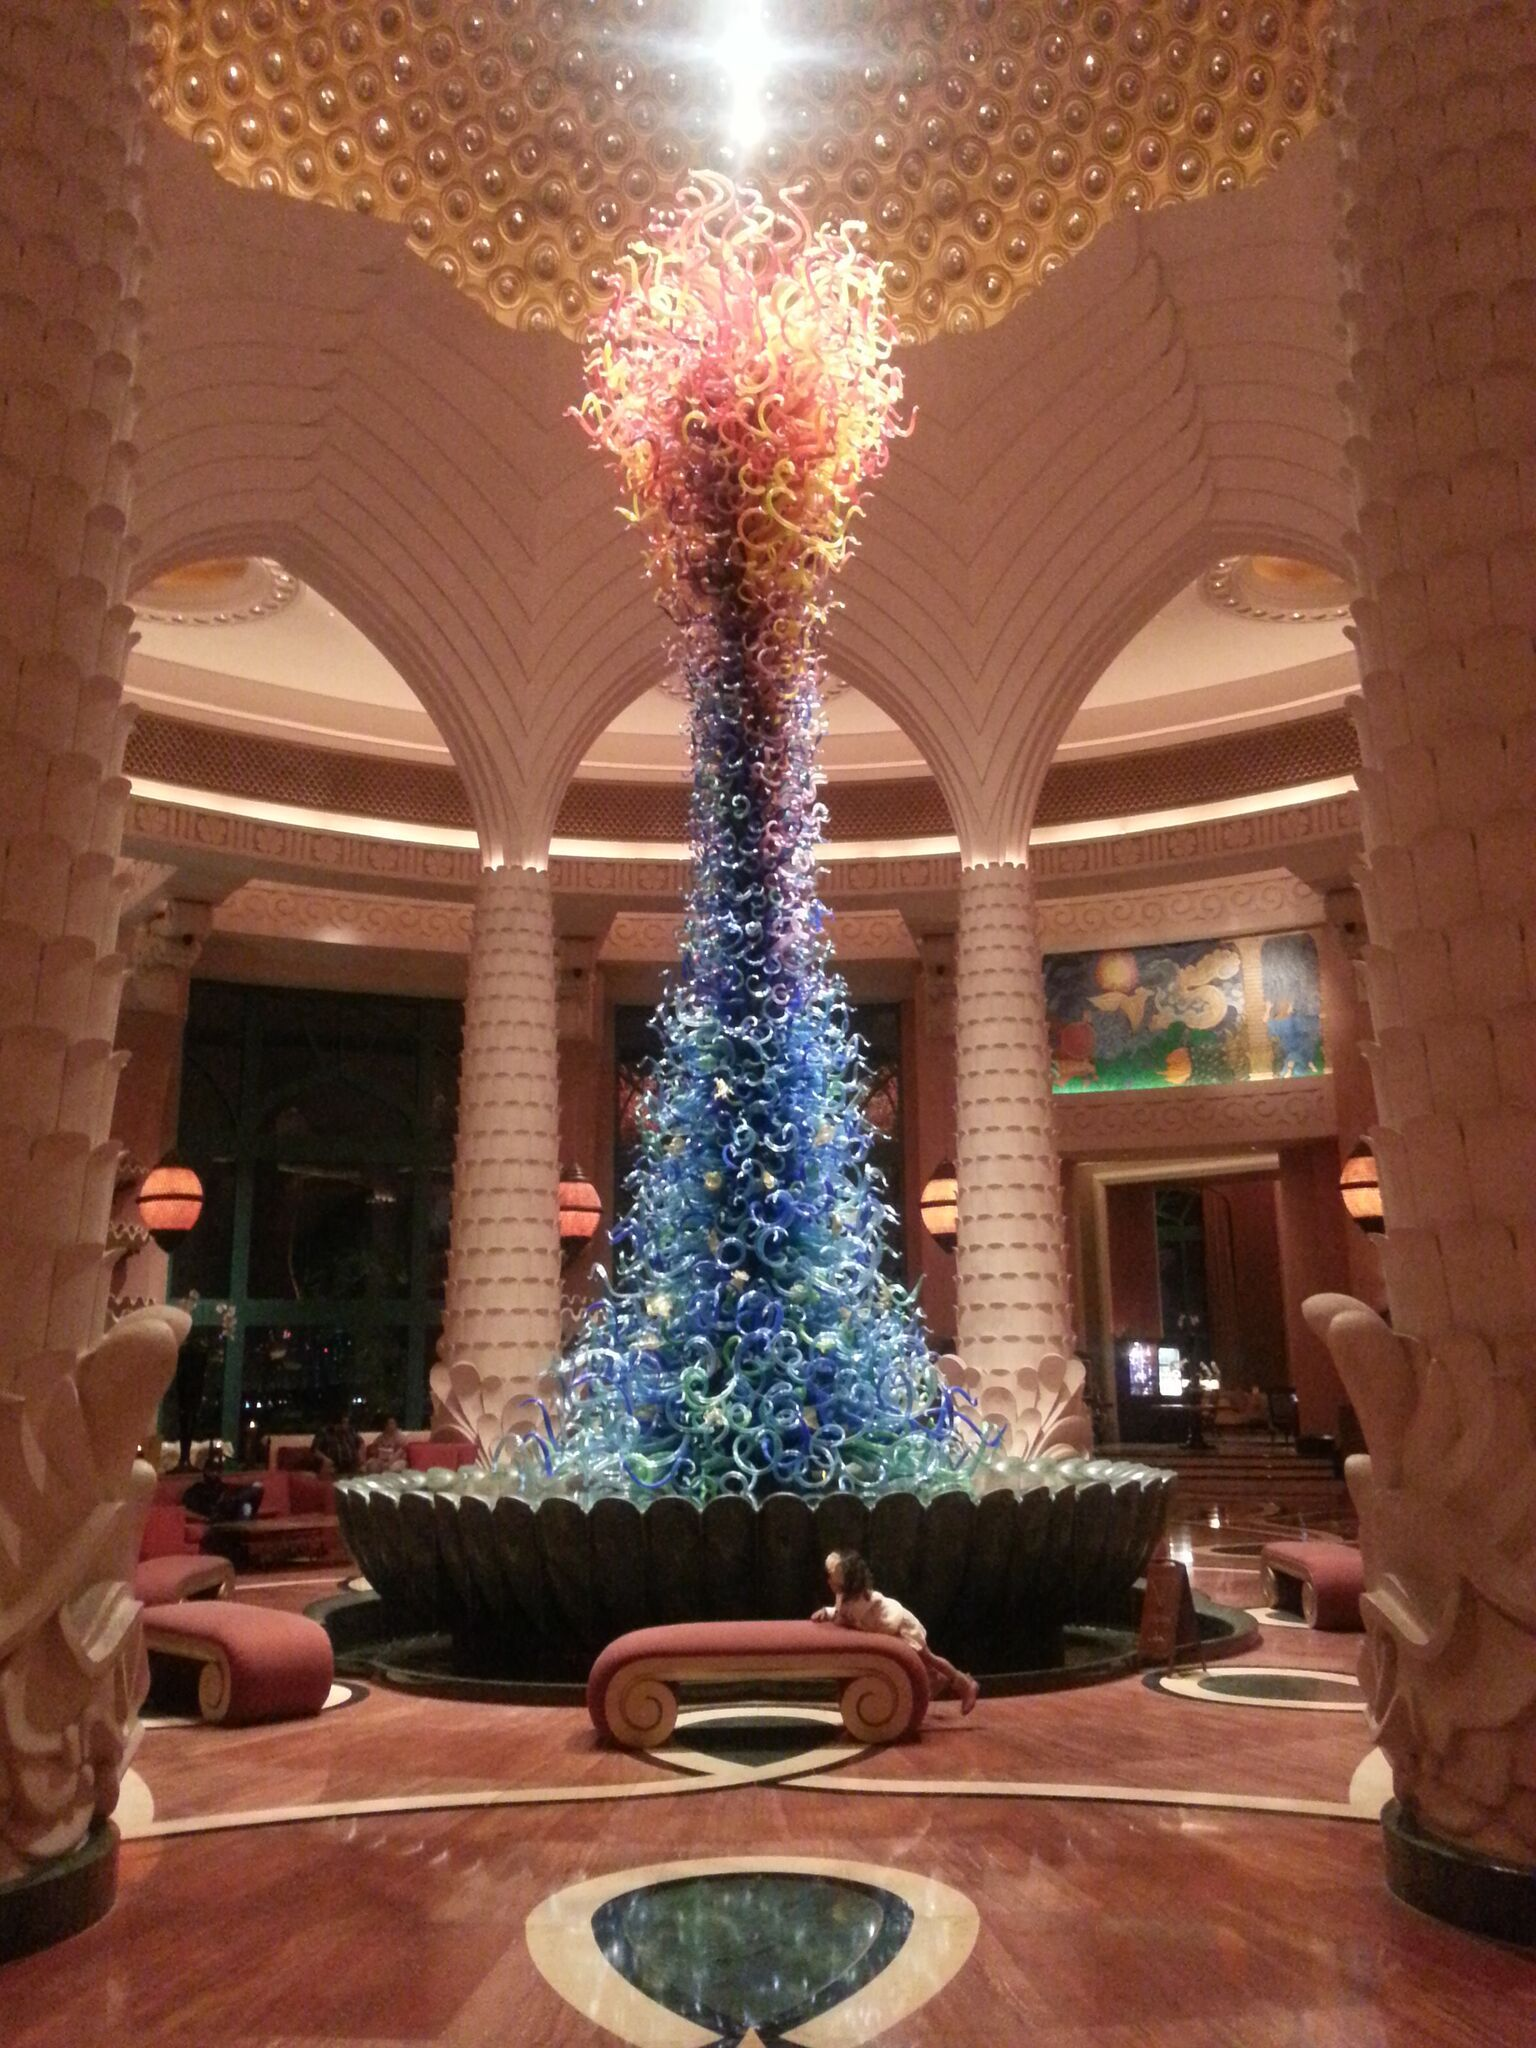 Atlantis the palm birthday candles best memories candles